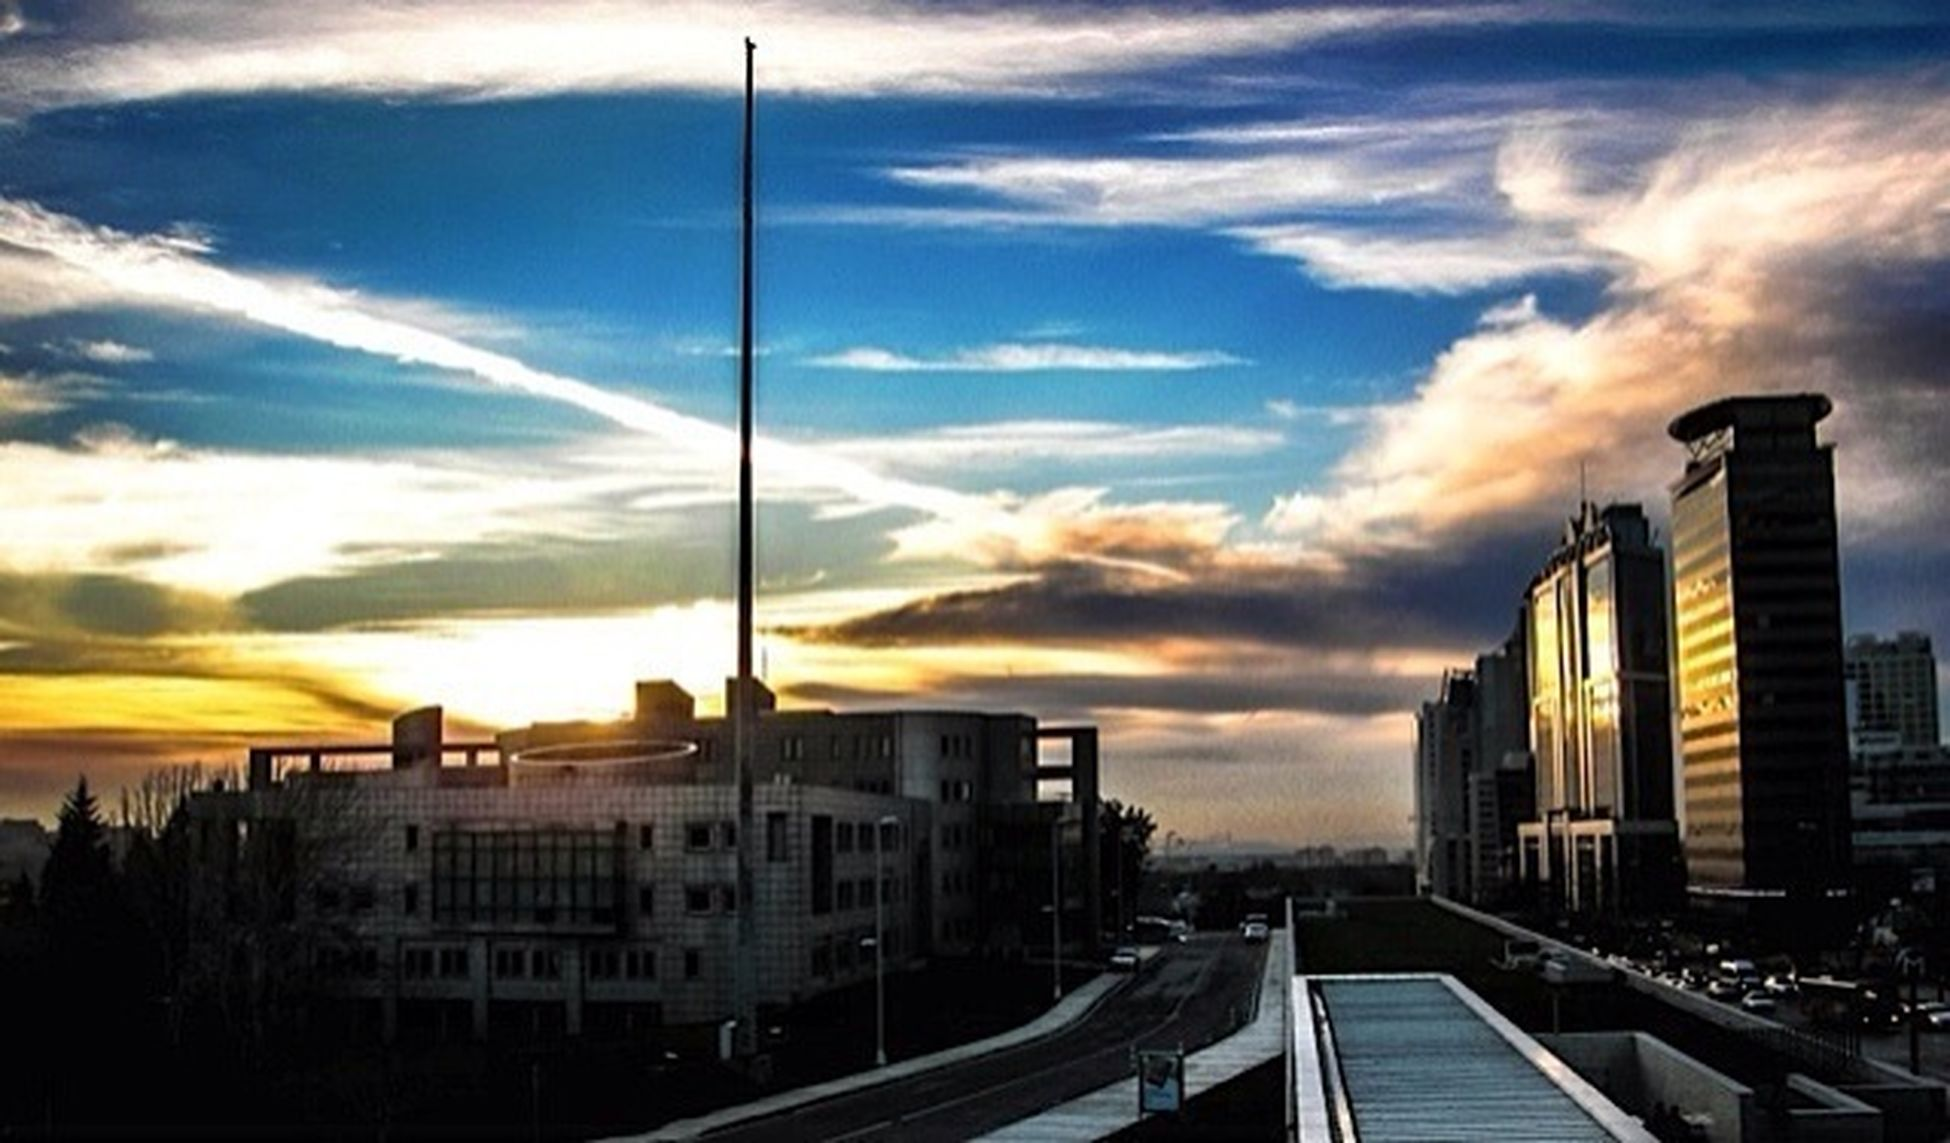 architecture, sky, built structure, building exterior, sunset, cloud - sky, city, cloud, cloudy, street light, building, railing, outdoors, the way forward, sunlight, orange color, transportation, residential structure, residential building, water